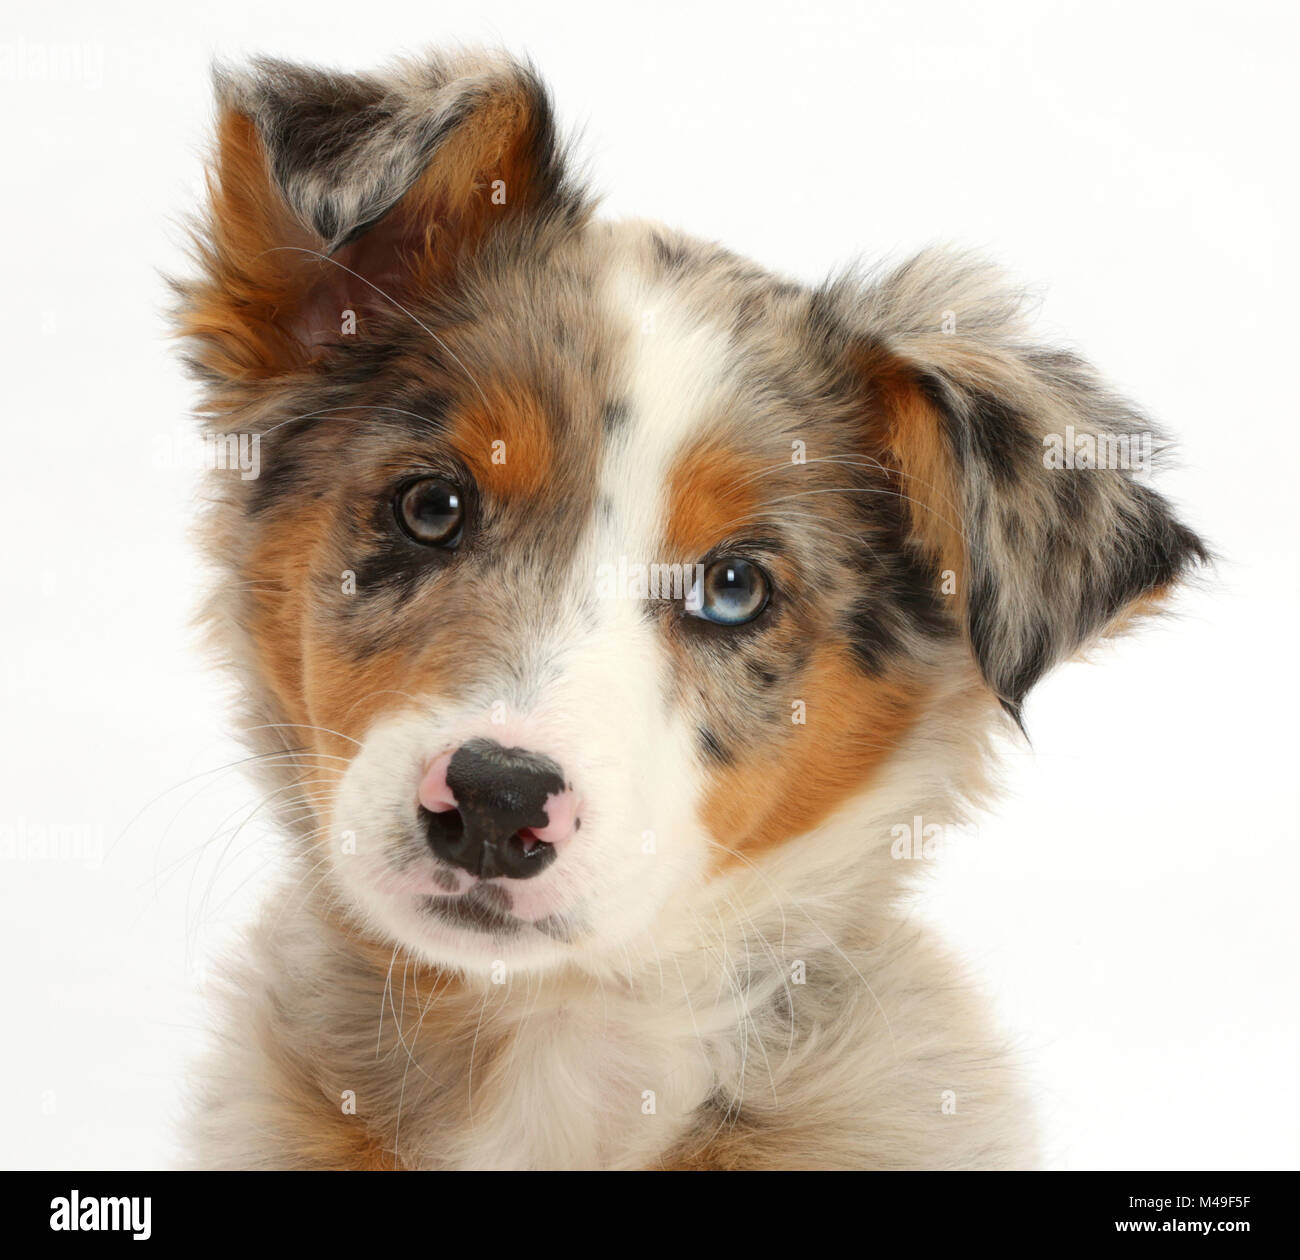 Tricolour merle Collie puppy, Indie, age 10 weeks. - Stock Image